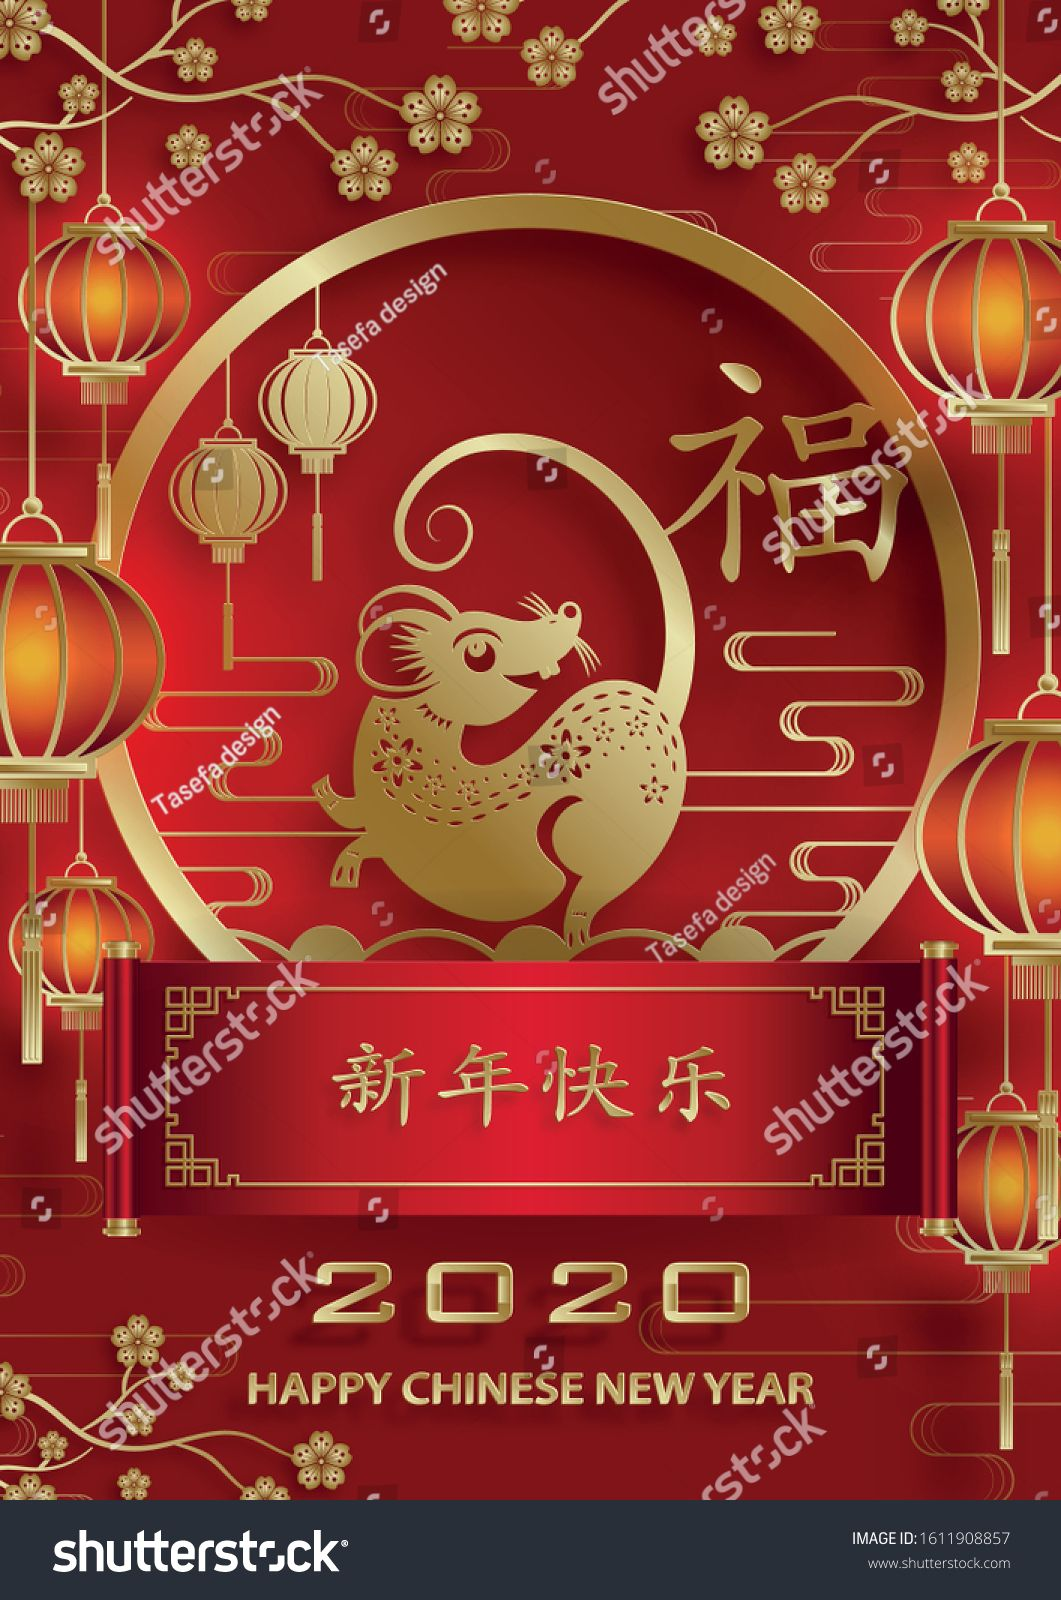 Image vectorielle de stock de Happy Chinese New Year 2020